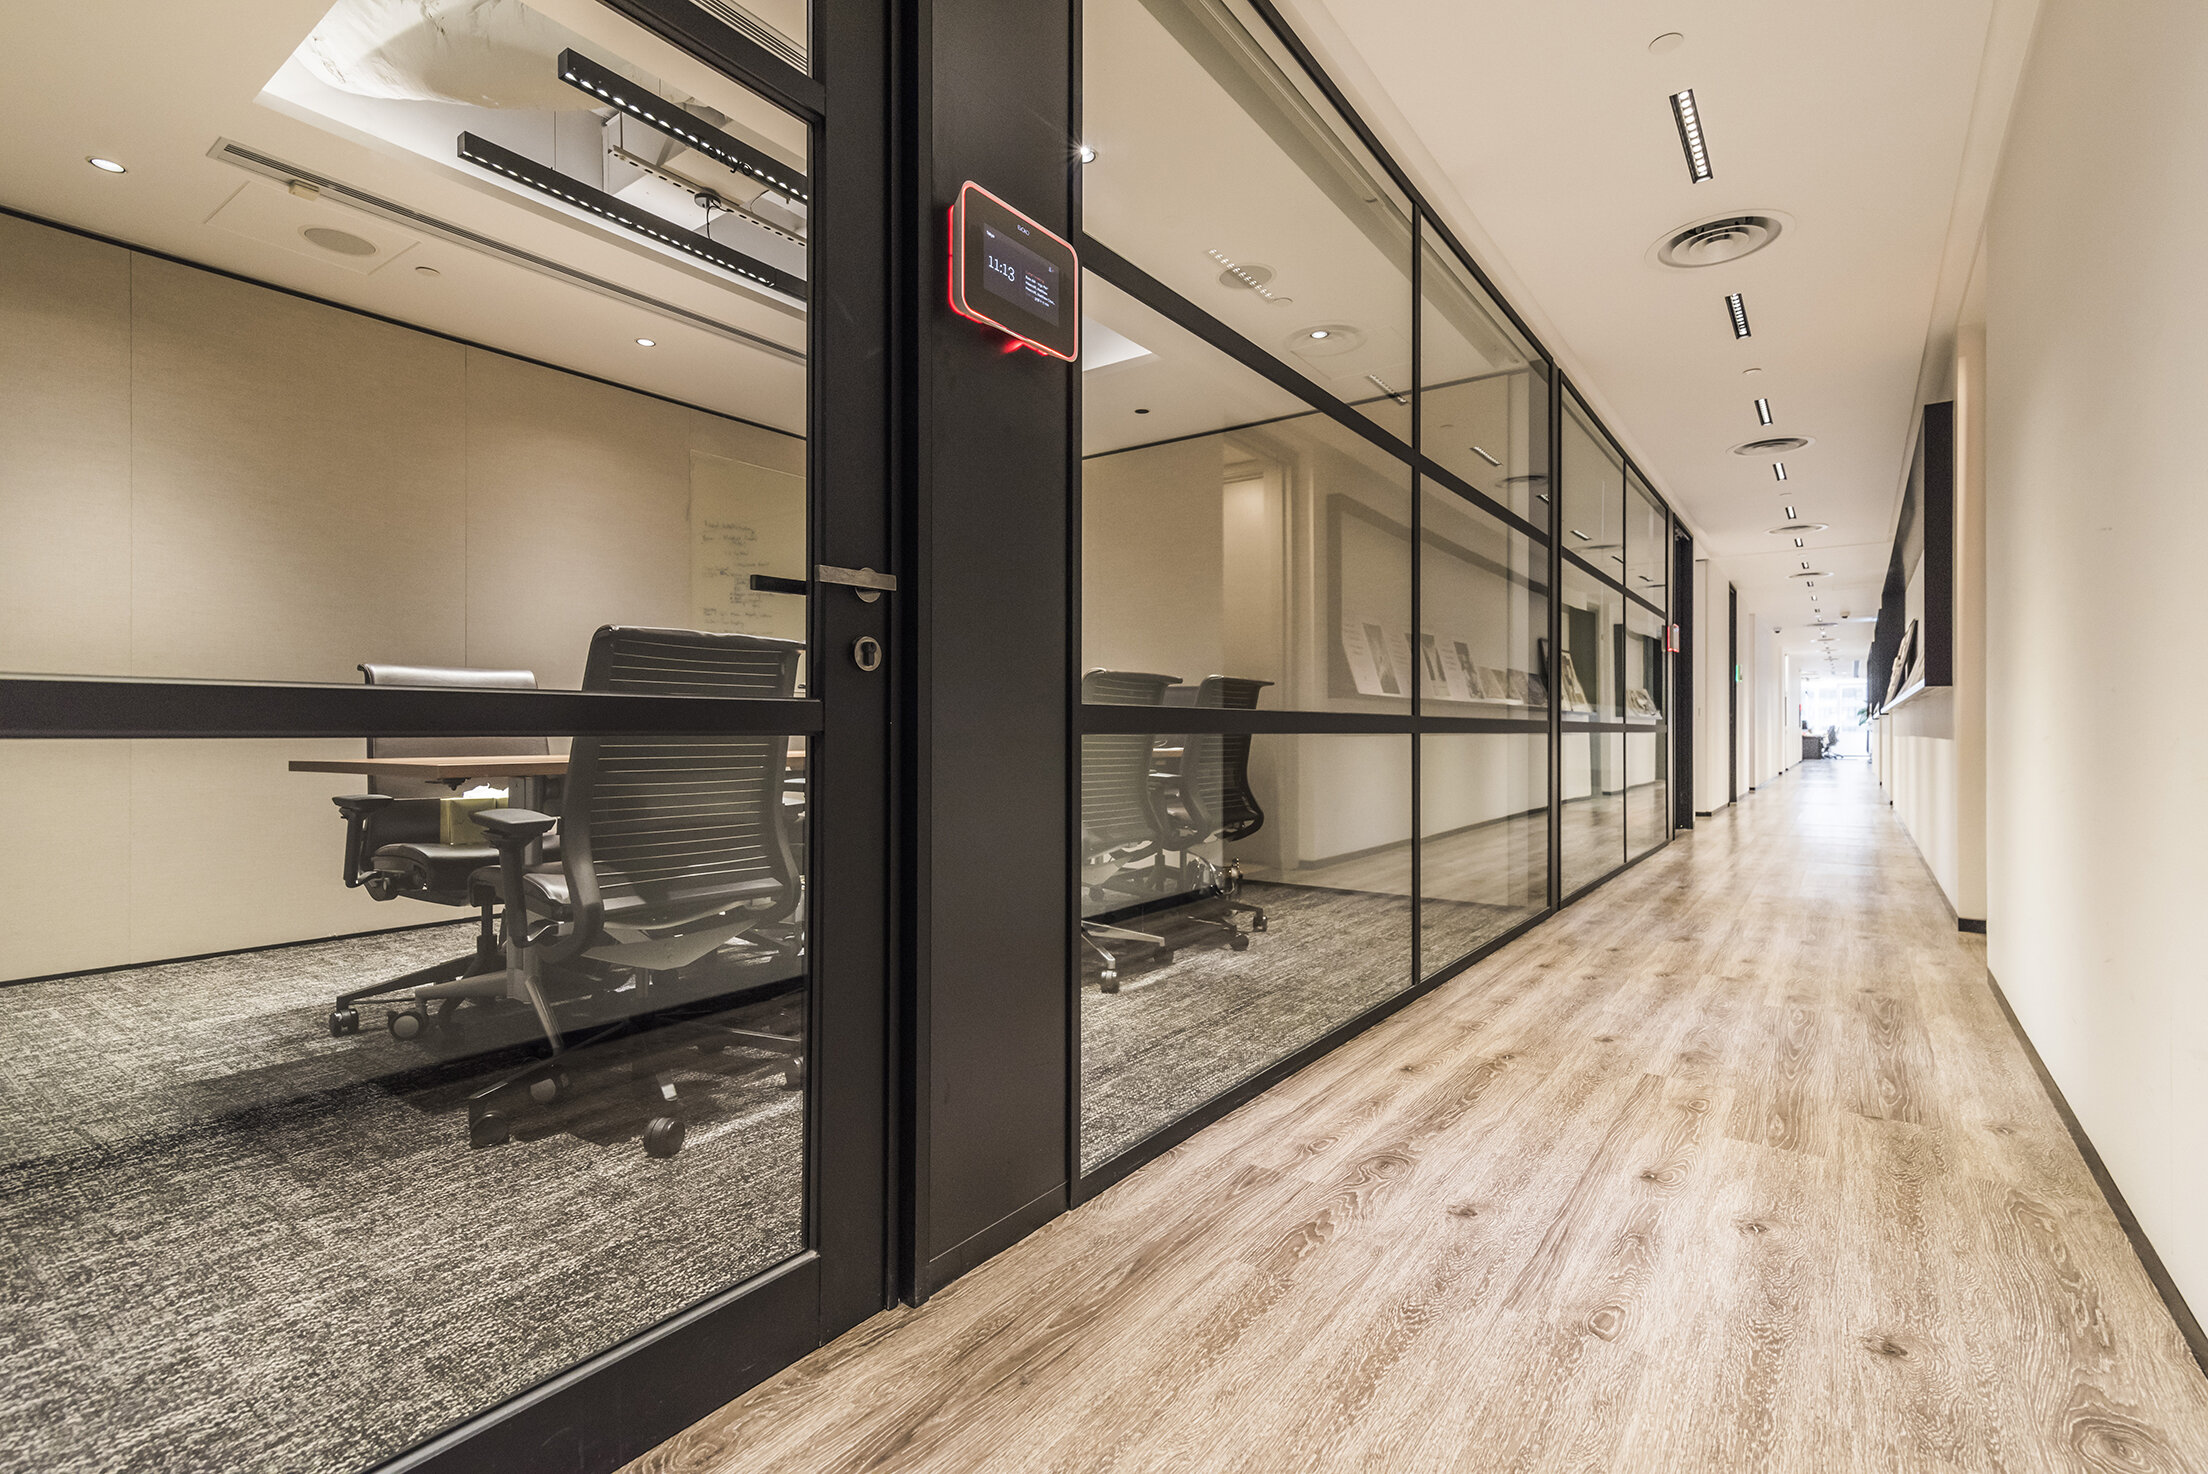 jeb-partitions-summit-integra-pivot-door-hongkong-office-12.jpg